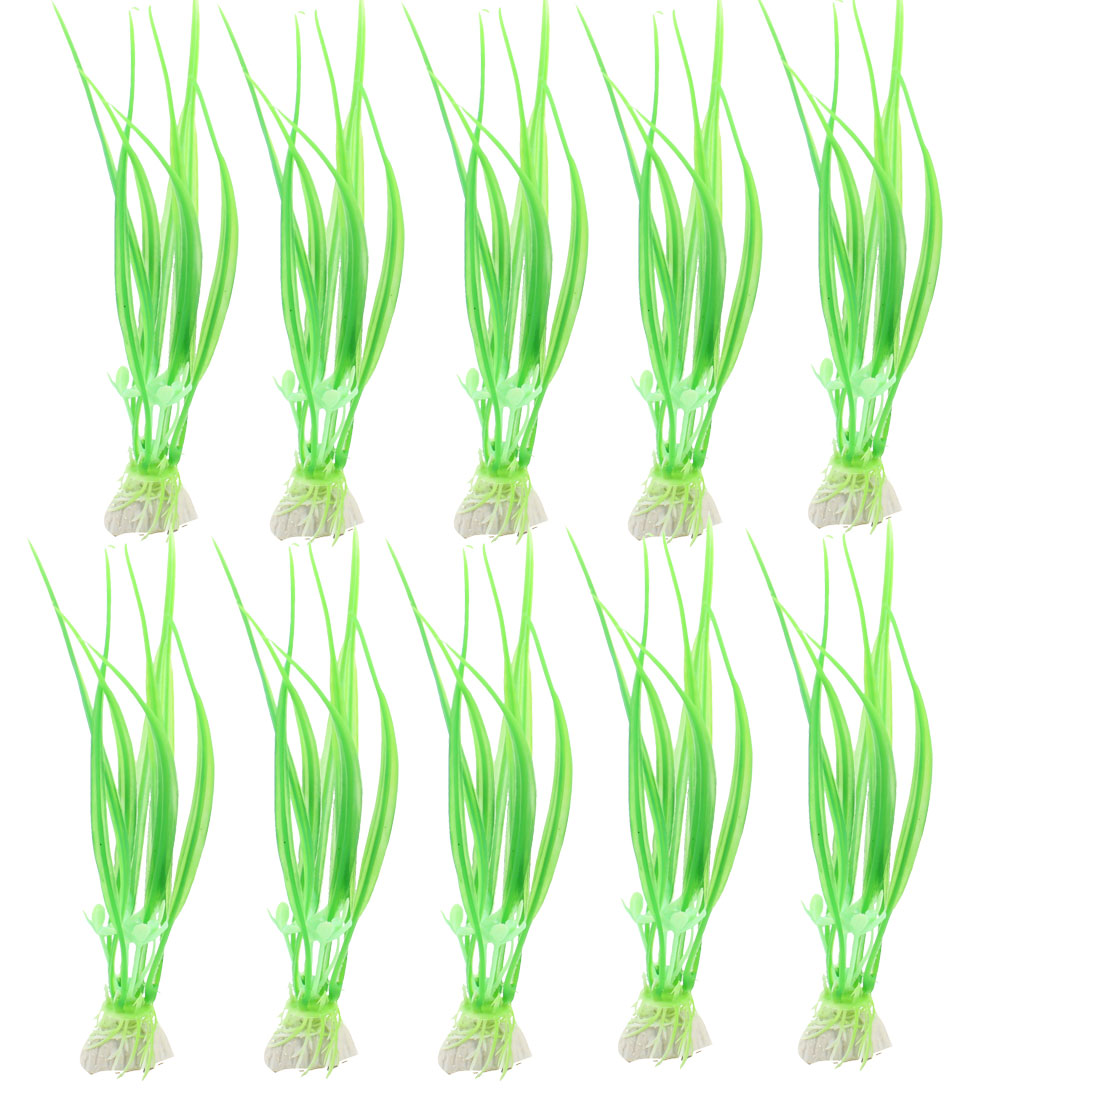 "10 Pcs Fish Tank Landscaping Ceramic Base Green Grass Decor 6.5"" High"